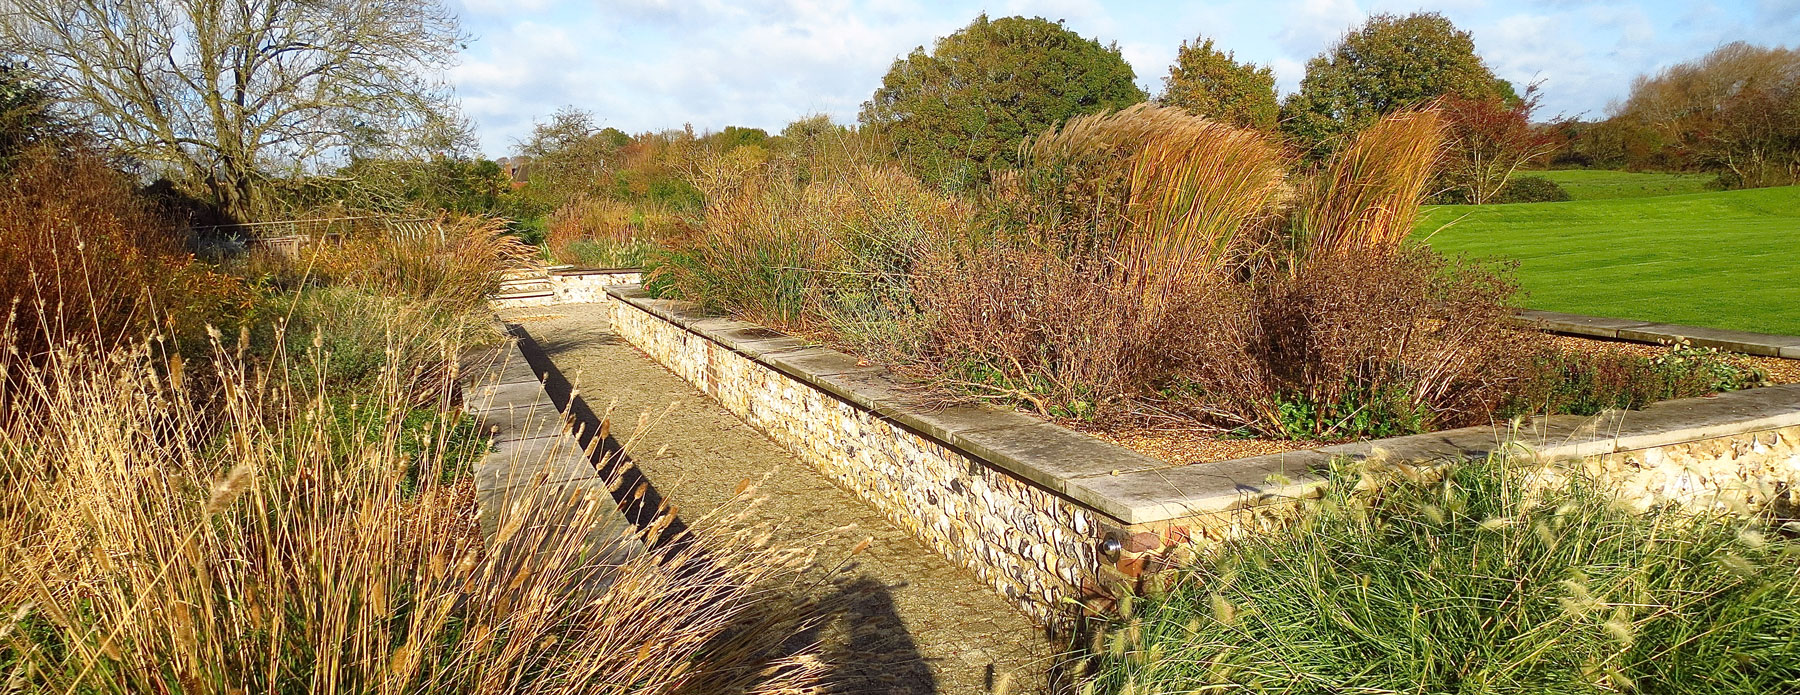 retaining wall - hamsey